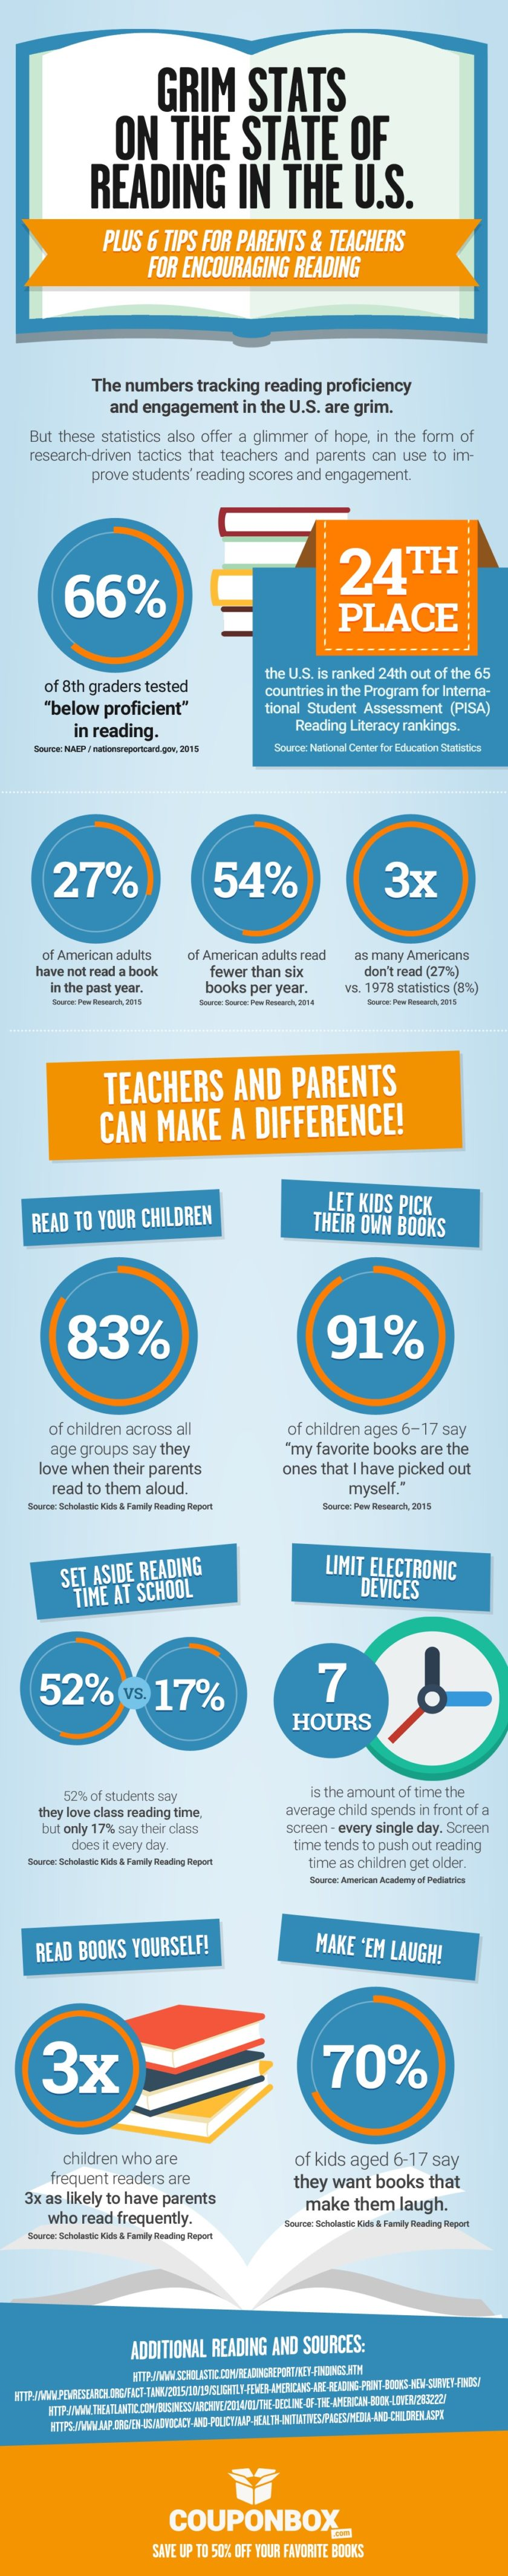 Reading stats in the US and tips for encouraging reading #infographic